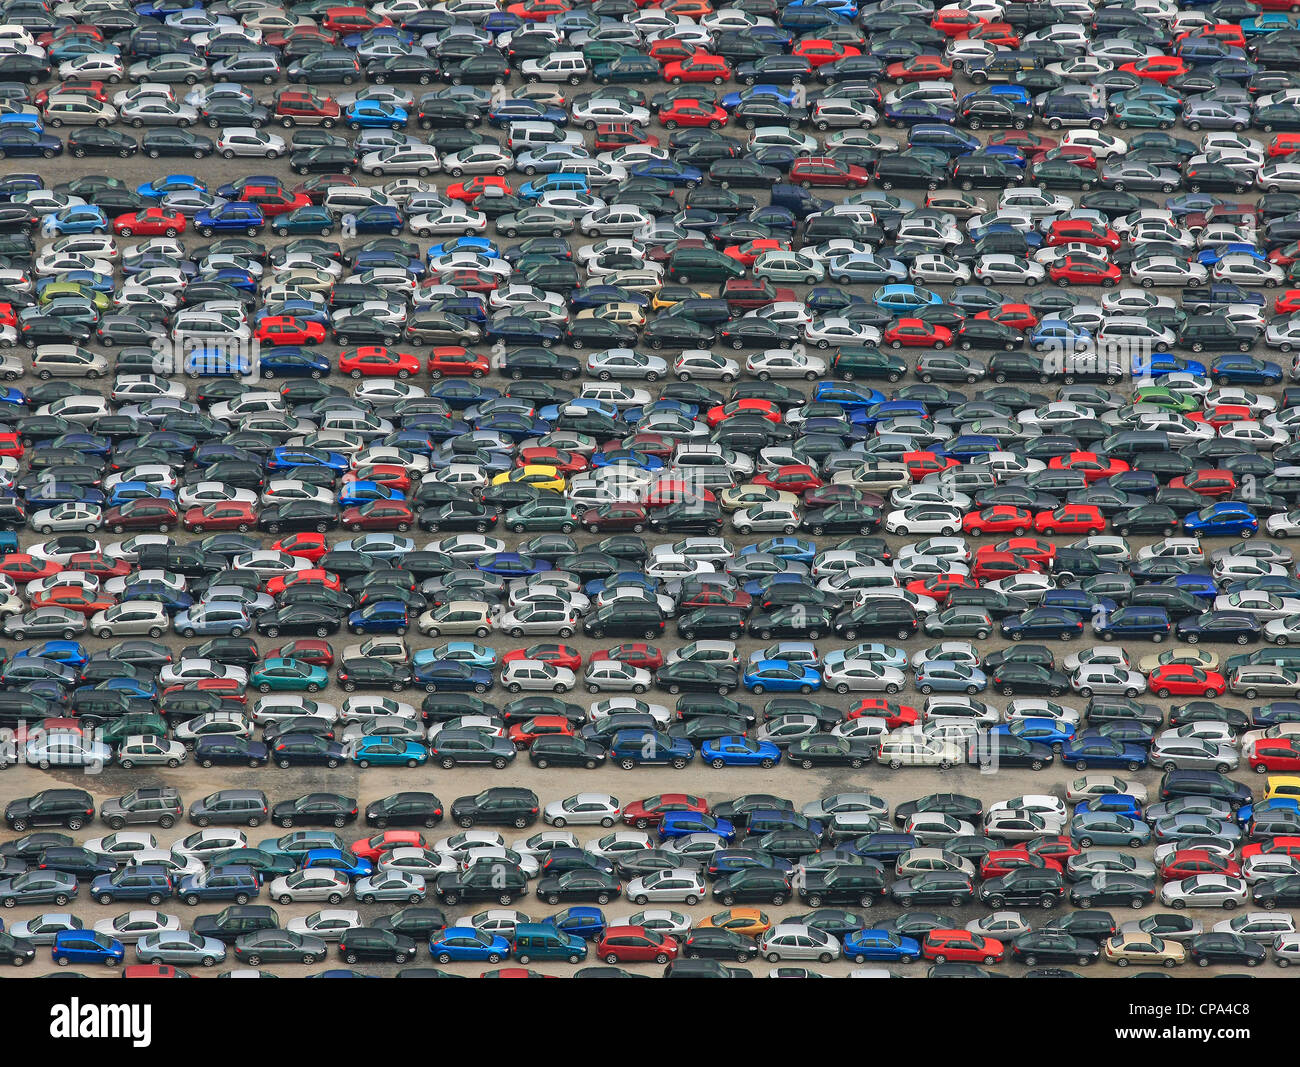 Aerial Image of cars in a Carpark - Stock Image